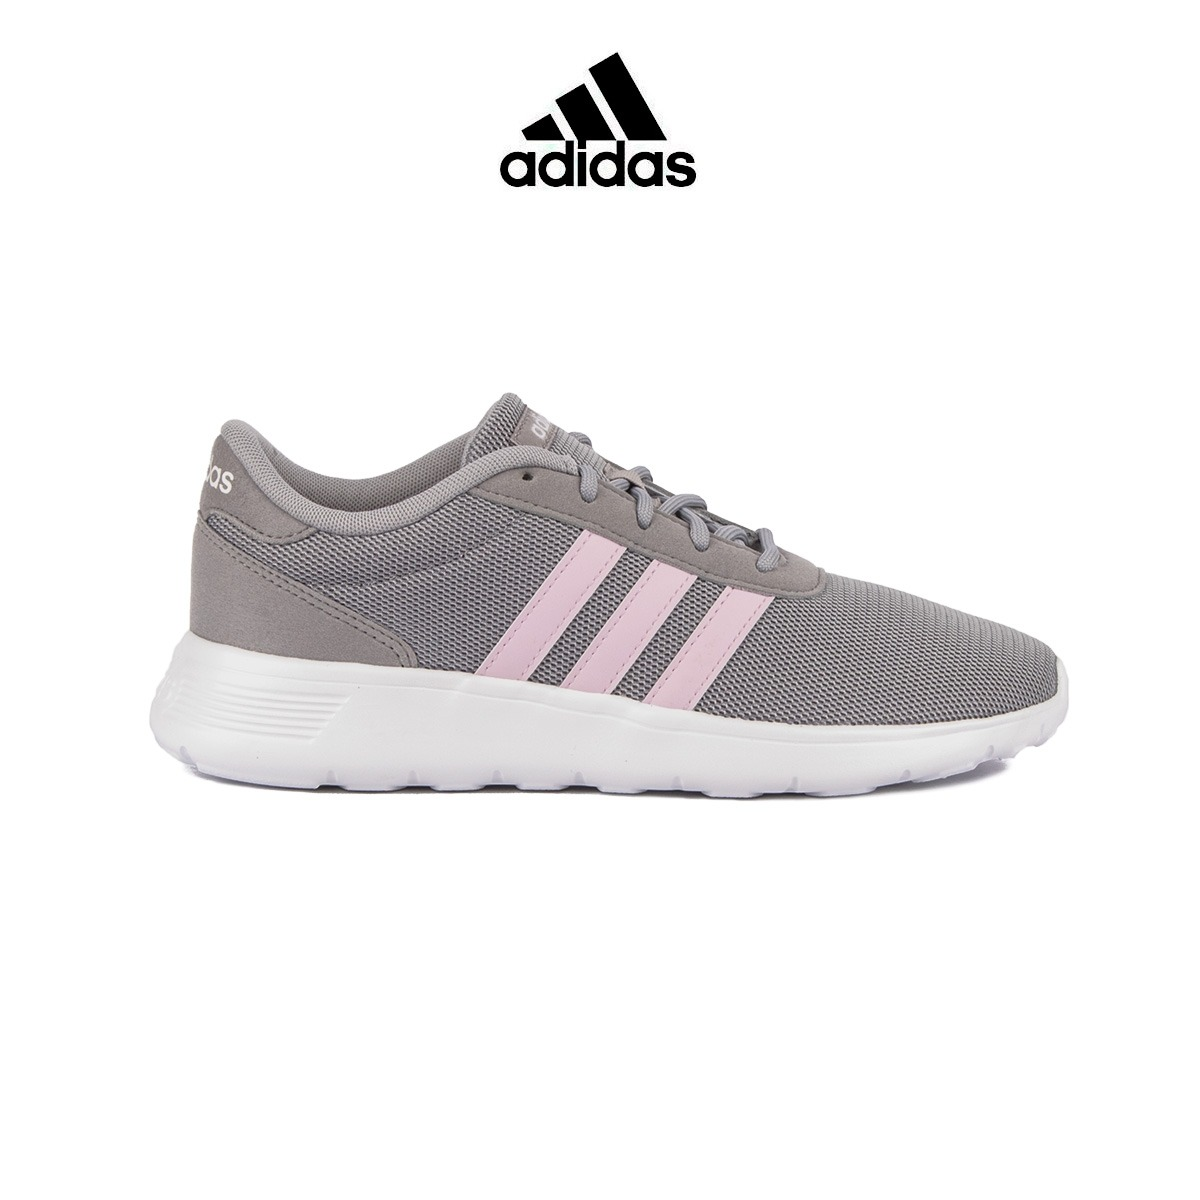 ADIDAS Lite Racer Gris Rosa Mujer